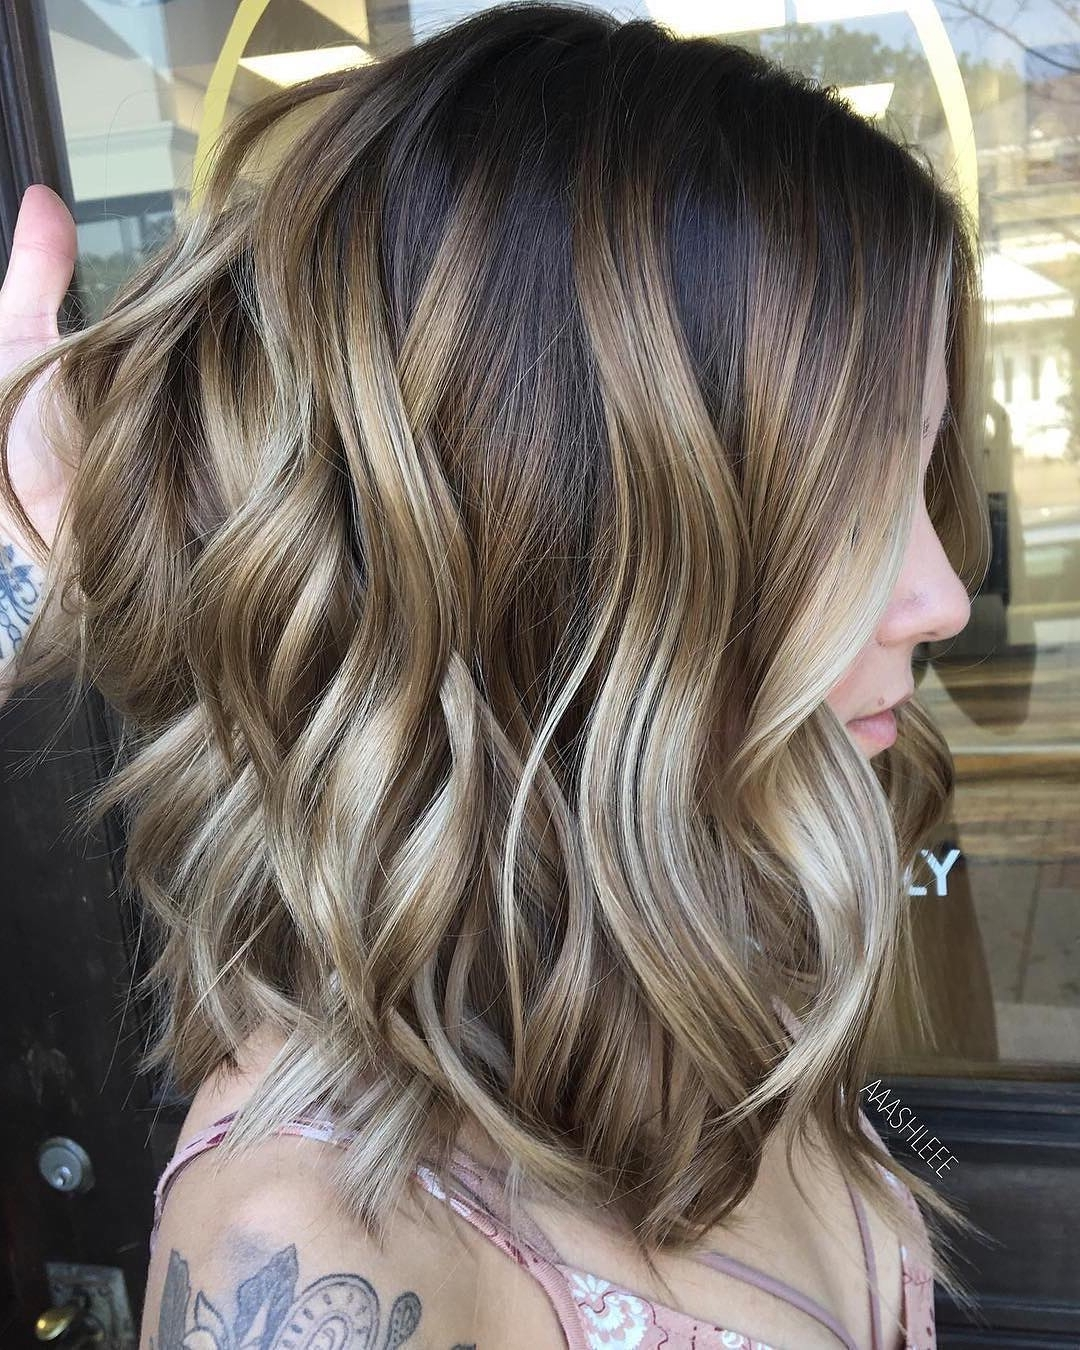 10 Ombre Balayage Hairstyles For Medium Length Hair, Hair Color 2018 Throughout 2017 Soft Layers And Side Tuck Blonde Hairstyles (View 7 of 20)